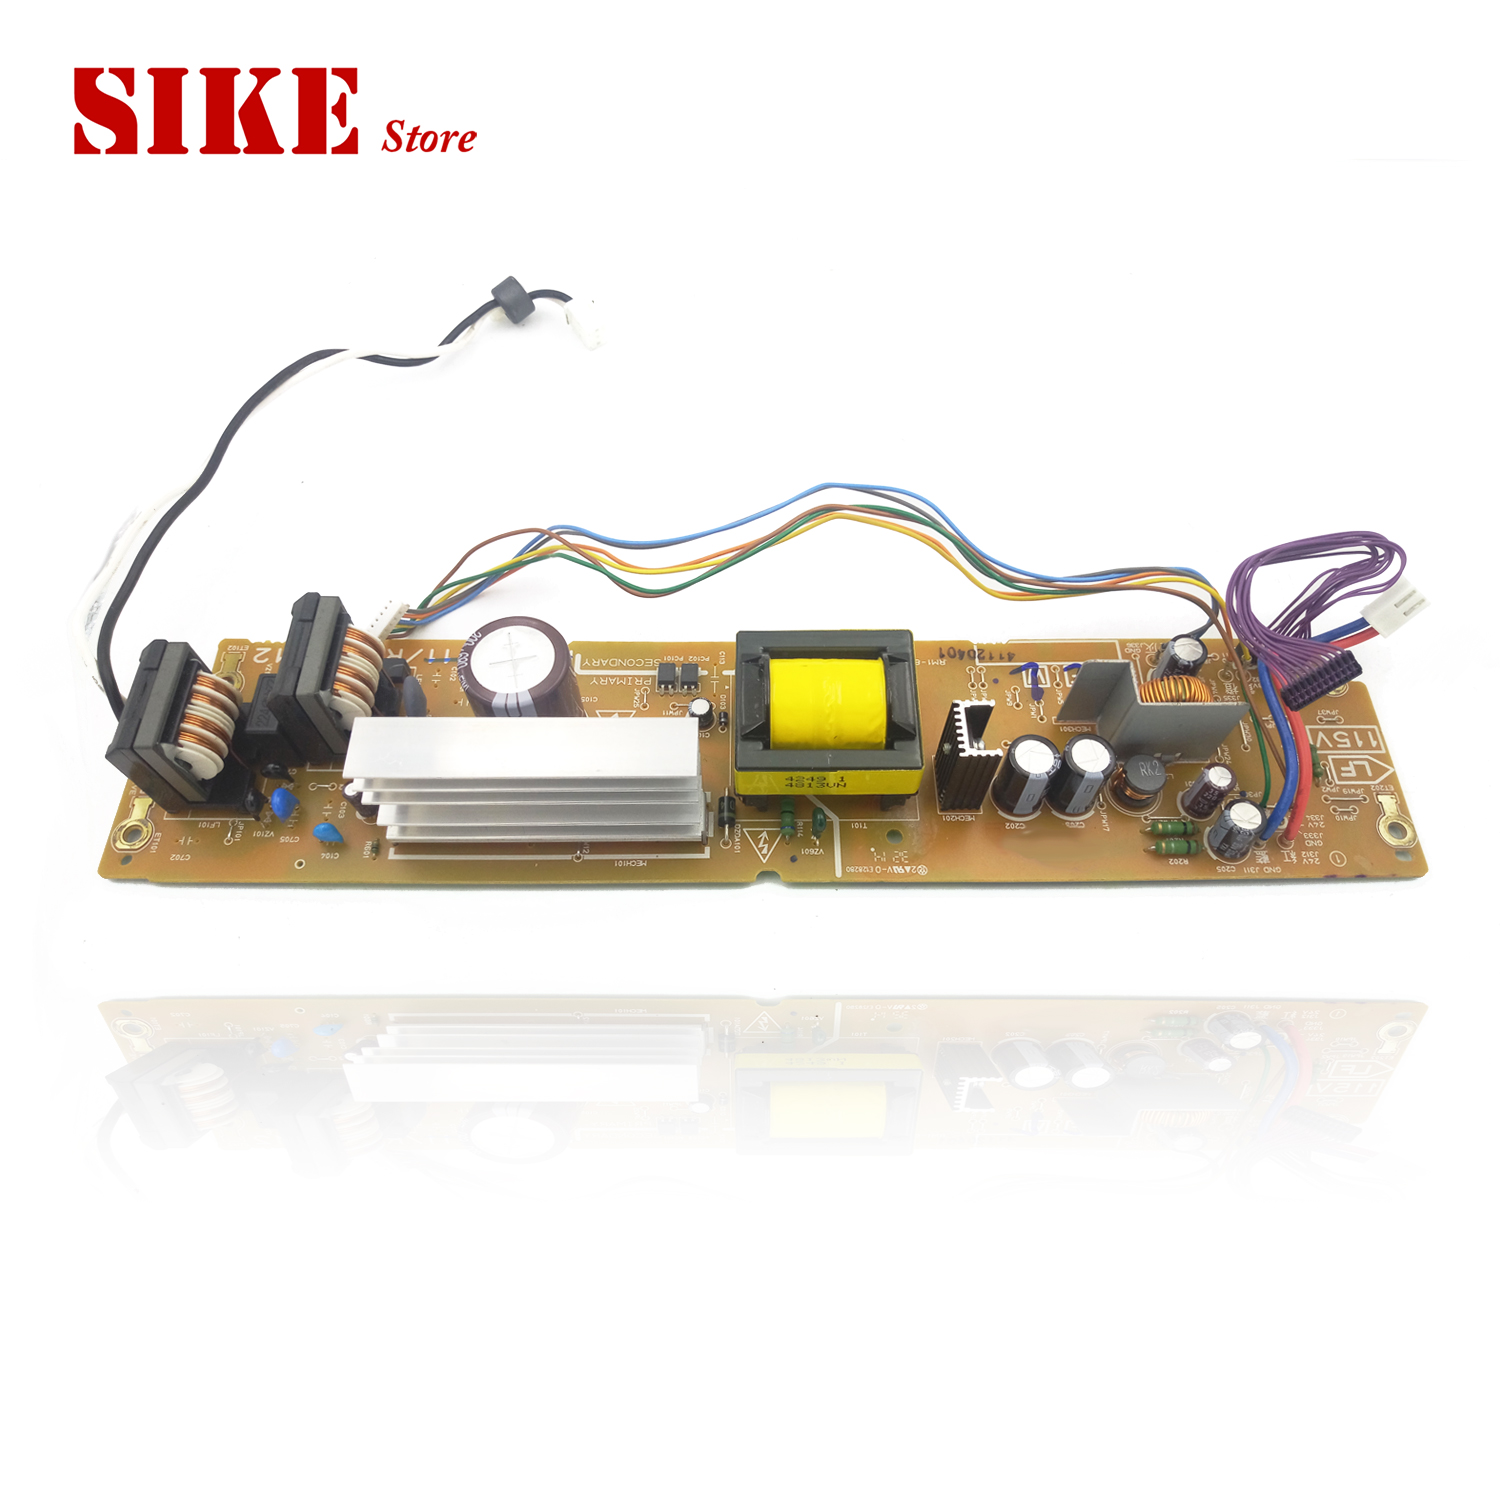 RM1-9012 RM1-9014 For <font><b>HP</b></font> M251 M276 M251nw M276nw M276n <font><b>M251n</b></font> 251 276 Voltage Power Supply Board RM1-9011 RM1-9013 image